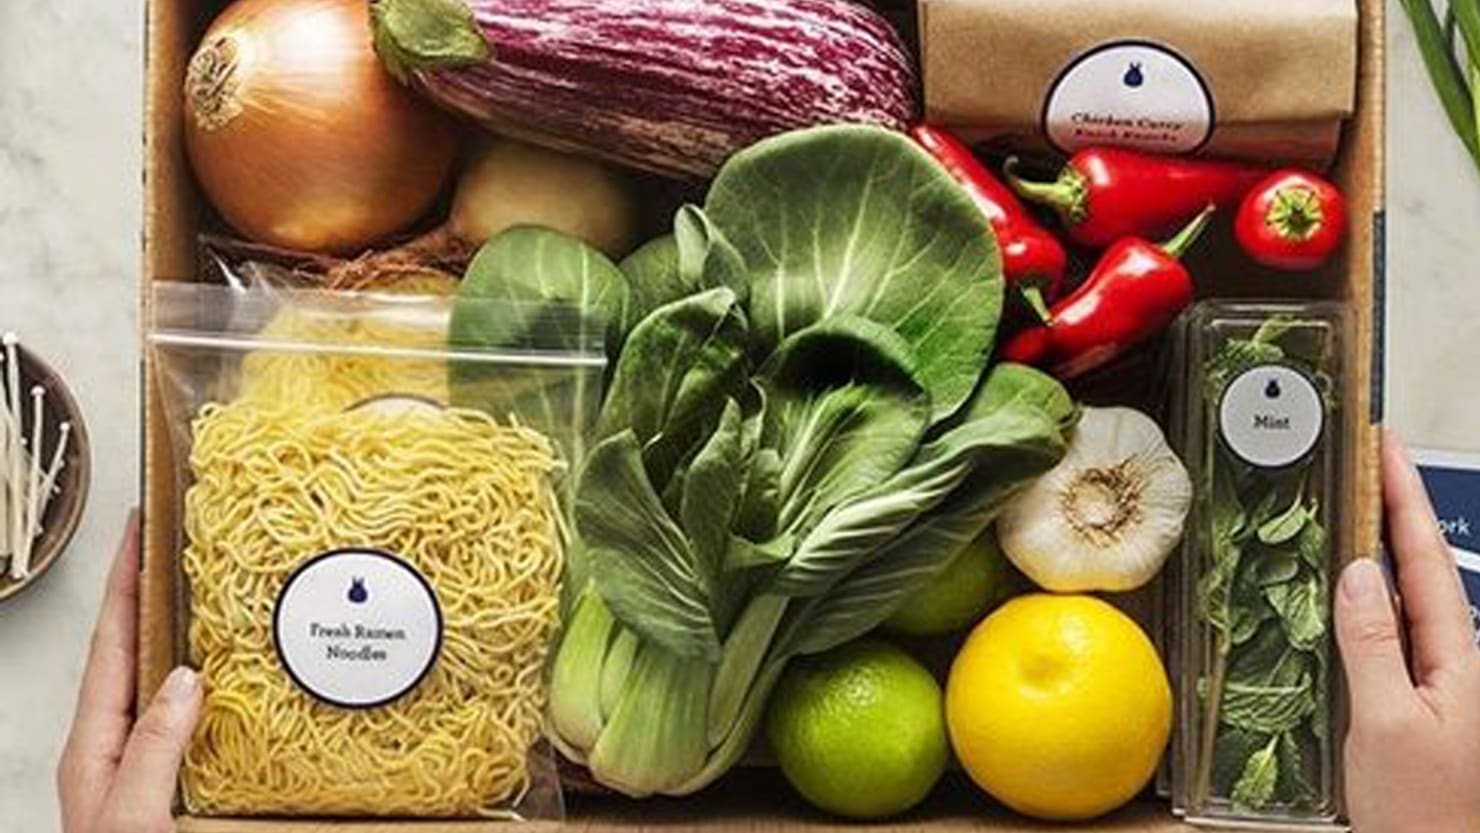 Blue apron users - Blue Apron Will Deliver World Class Ingredients To Your Door For Less Than Getting Them At The Grocery Store